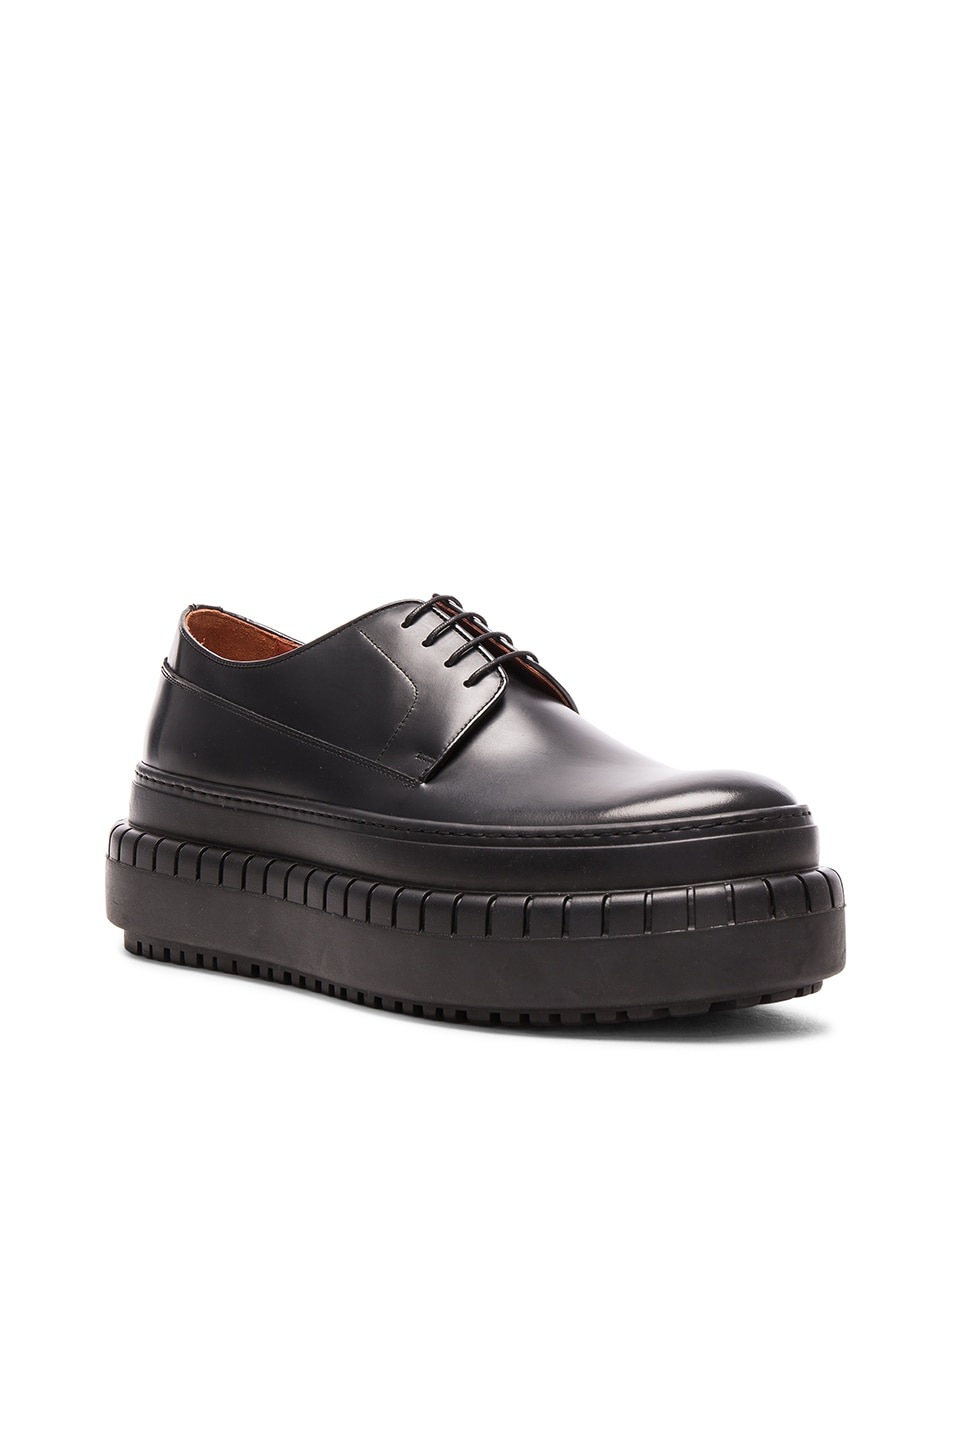 e0c5dbbb1693 Image 1 of Acne Studios Leather Hover Derbies in Black